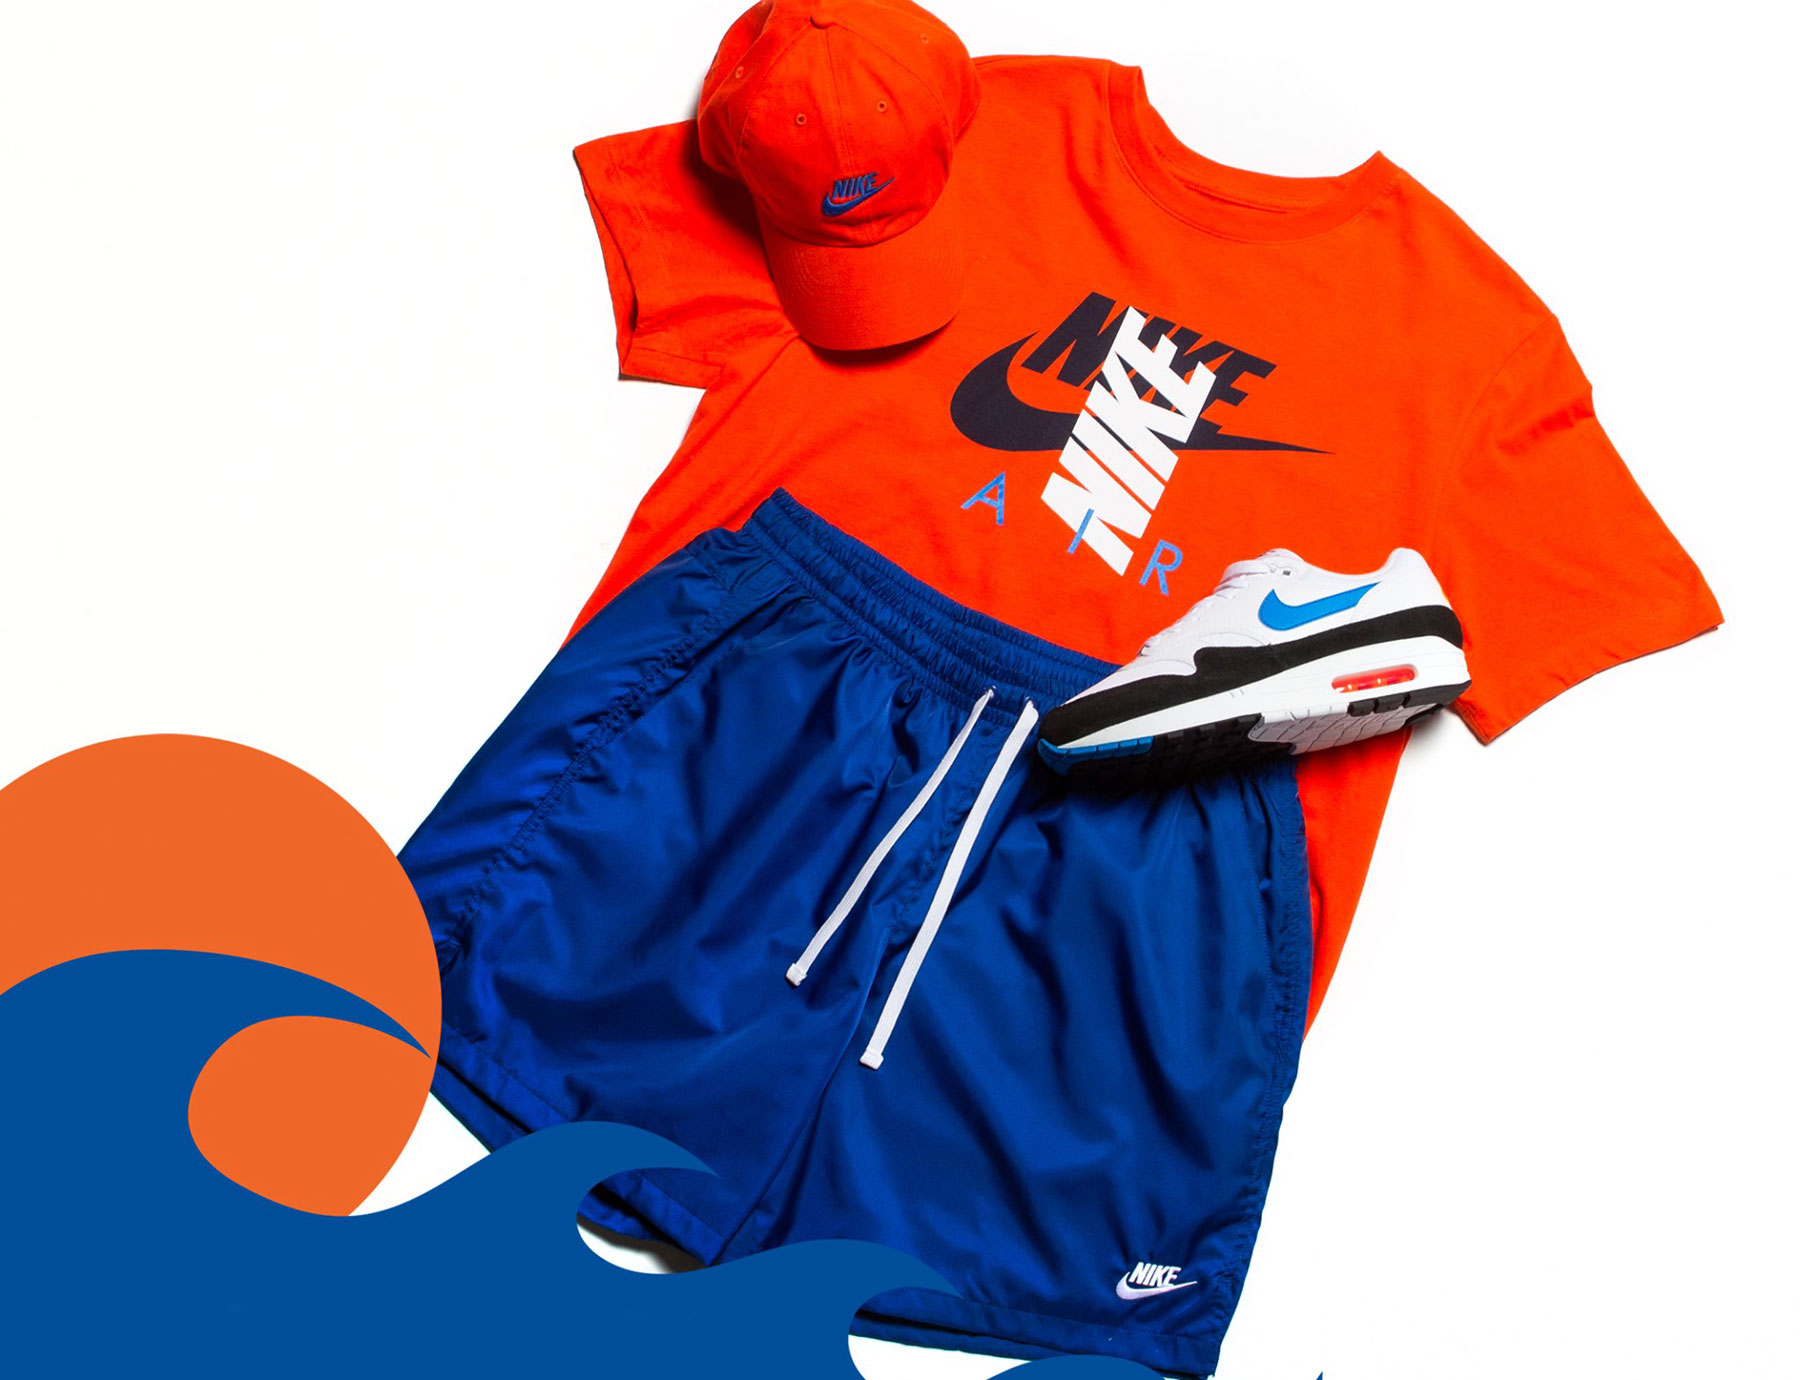 nike-air-max-1-endless-summer-hat-shirt-match